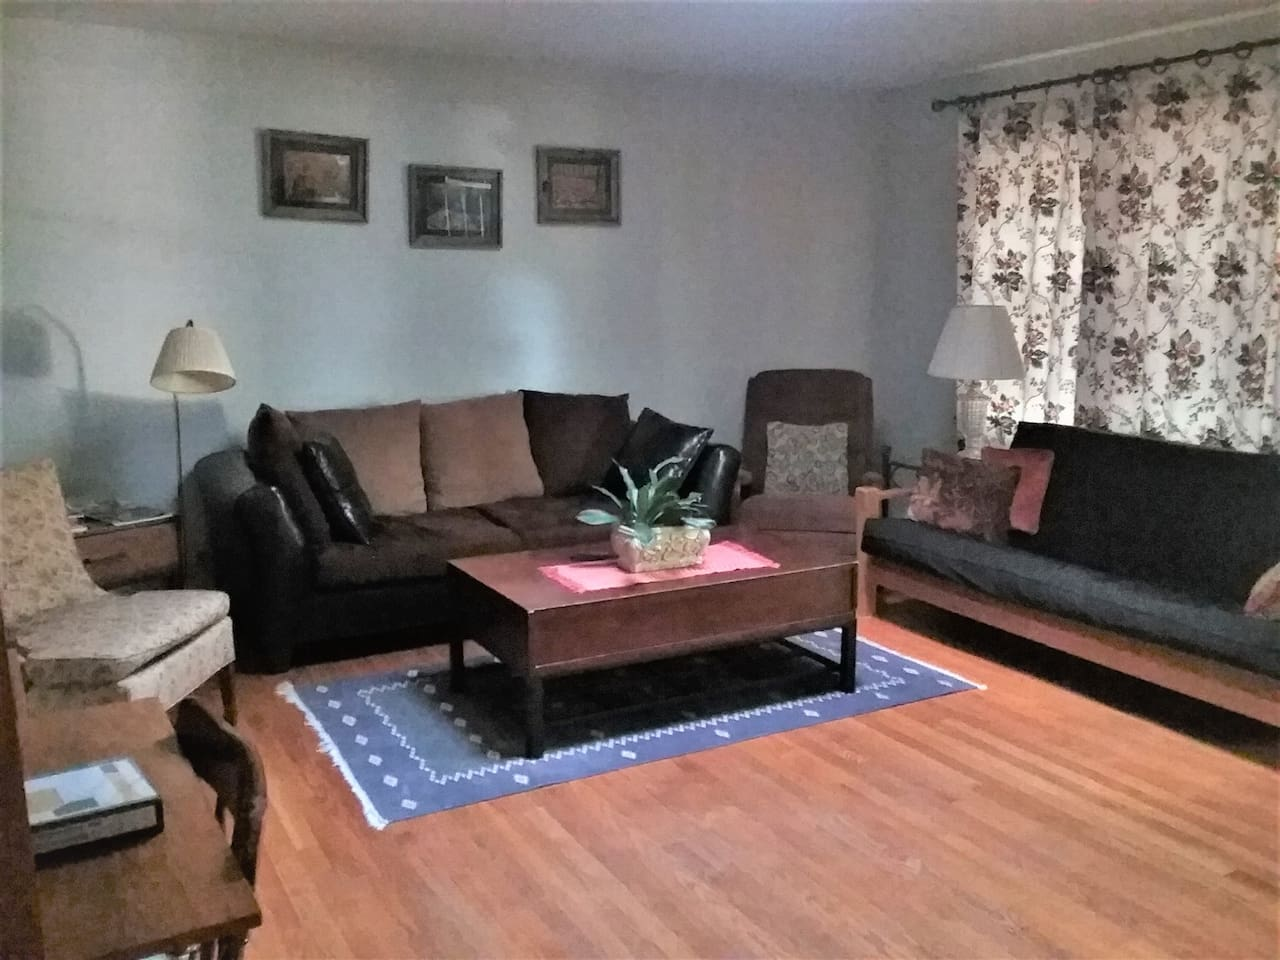 Comfortable living room with a skylight, plenty of seating, desk, television, and fold-out futon